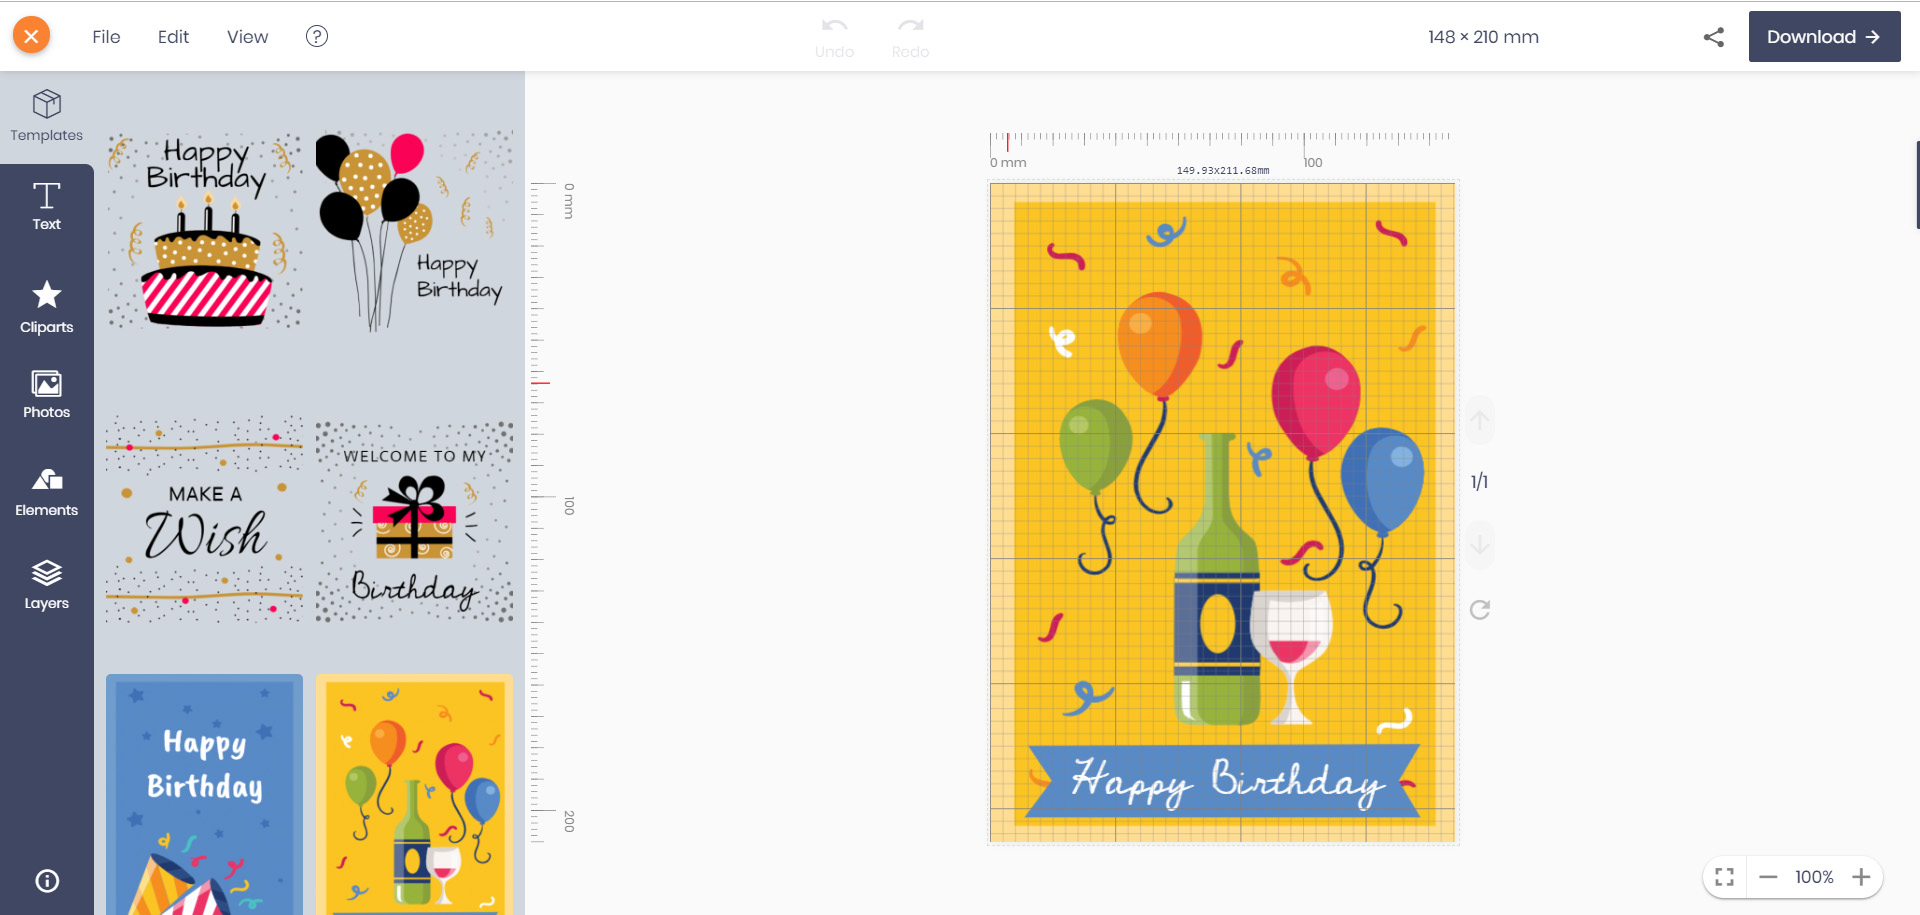 When You Open The Editor Choose Best Model For Original Size Of Birthday Card Is 85 X 55 Mm 450 Dpi